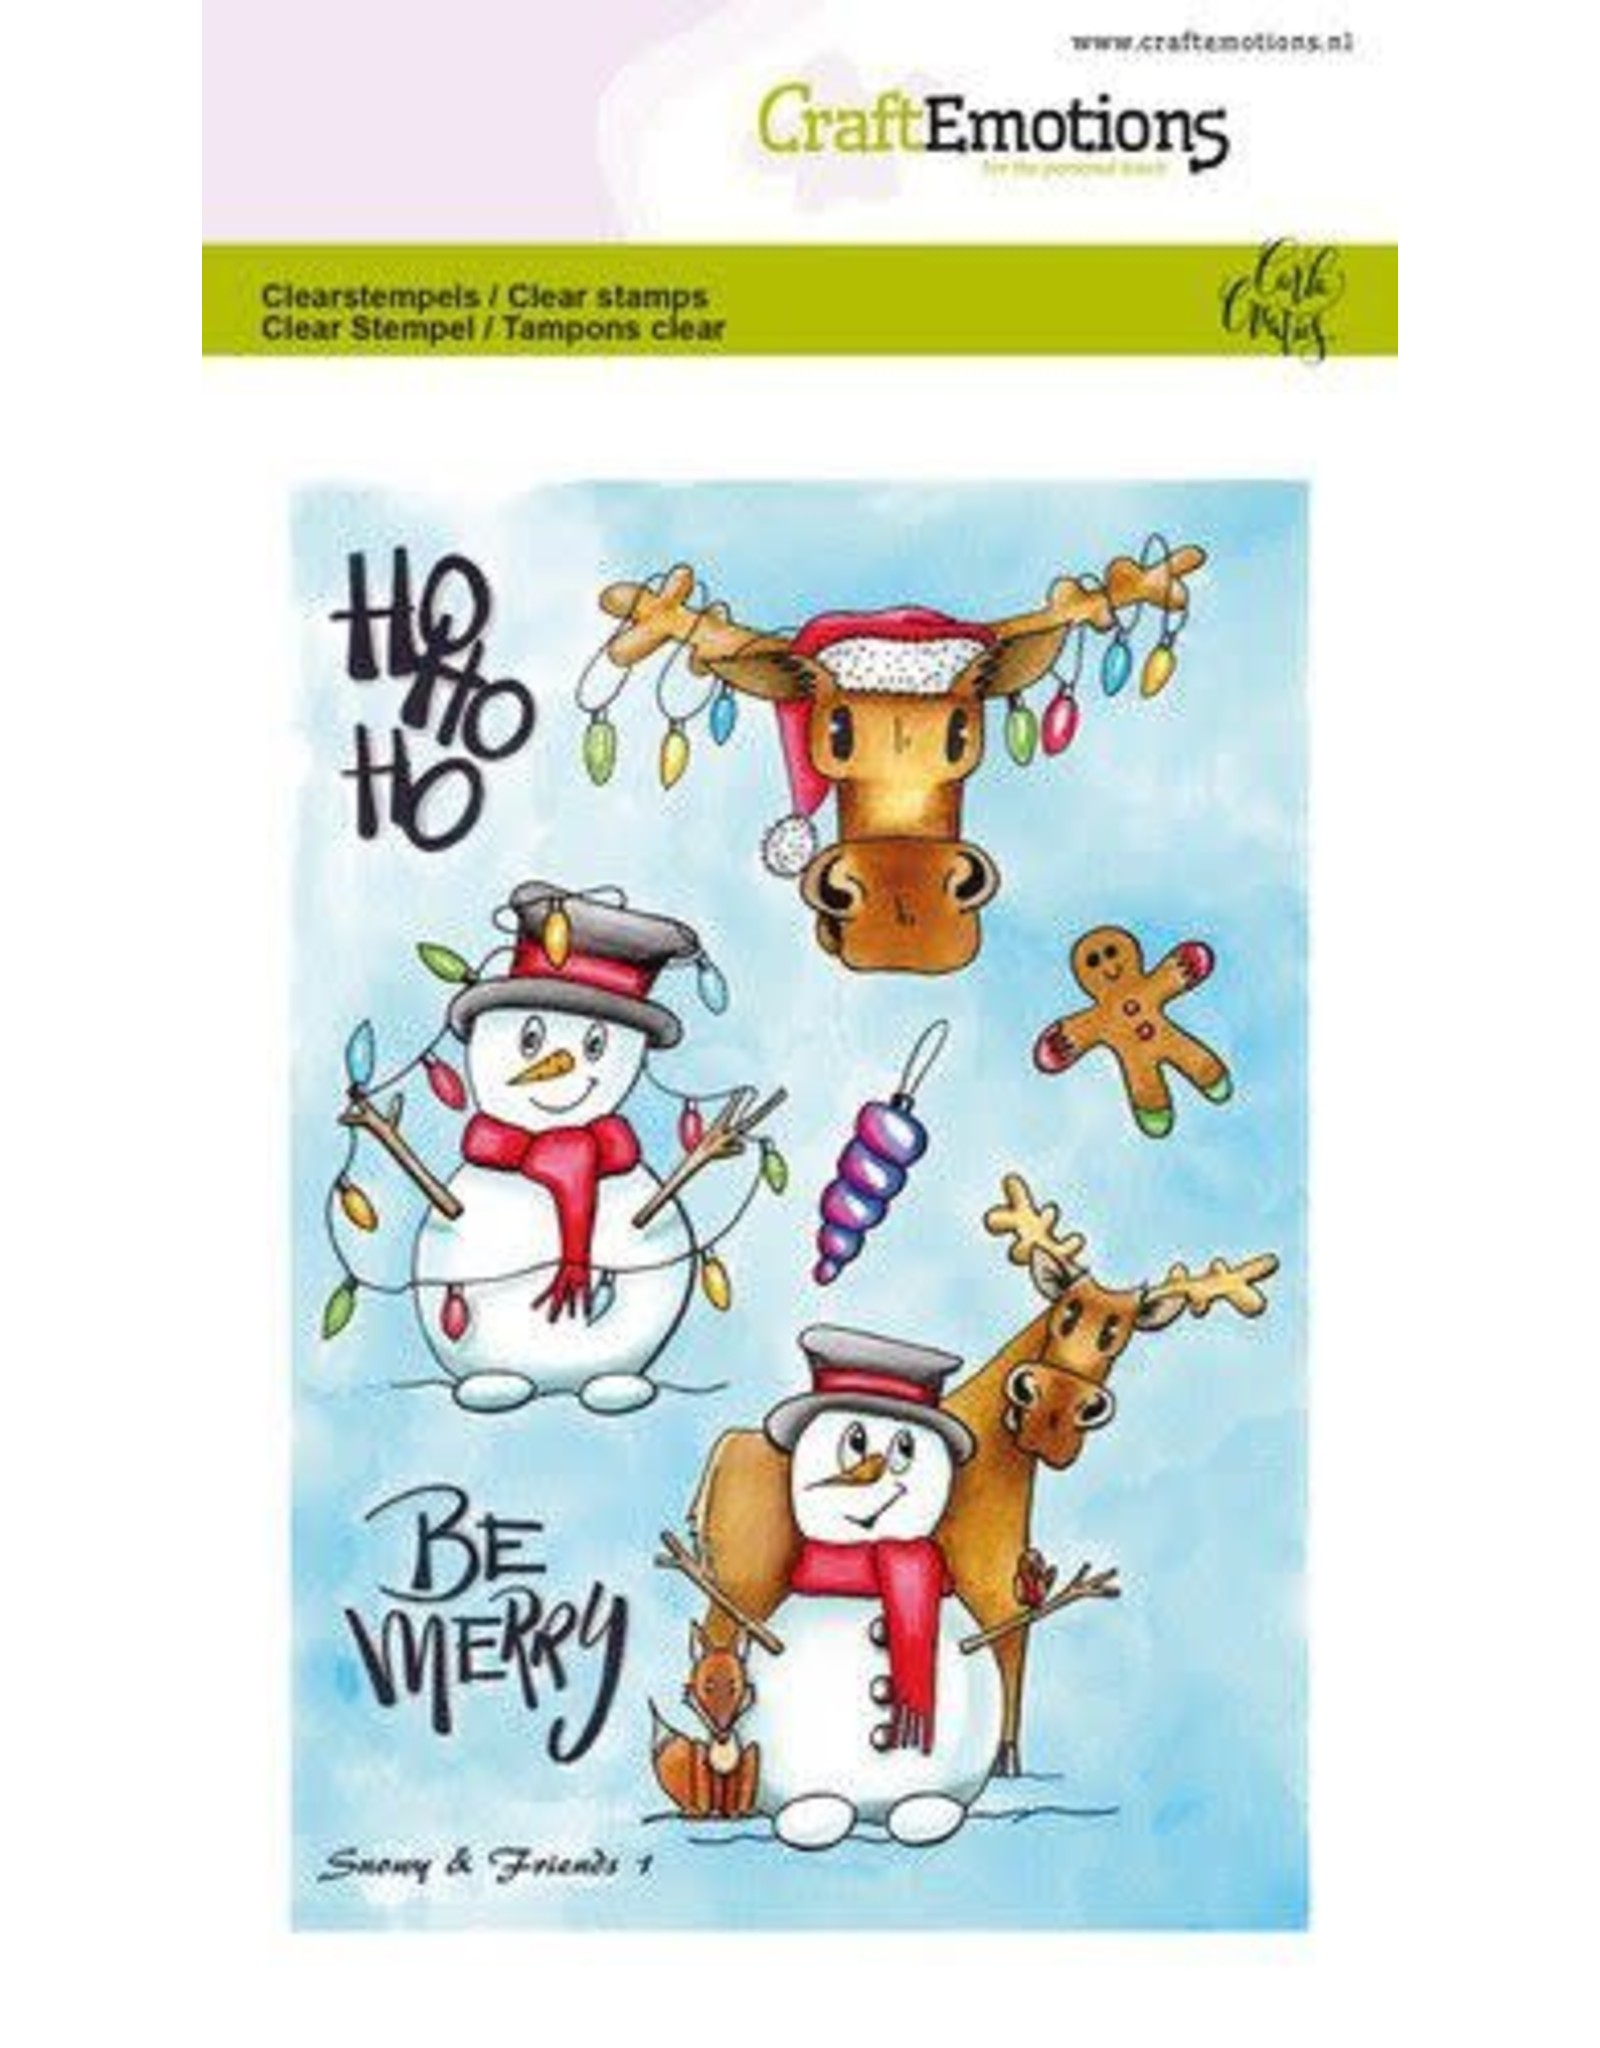 Craft Emotions CraftEmotions clearstamps A6 - Snowy & friends 1 Carla Creaties